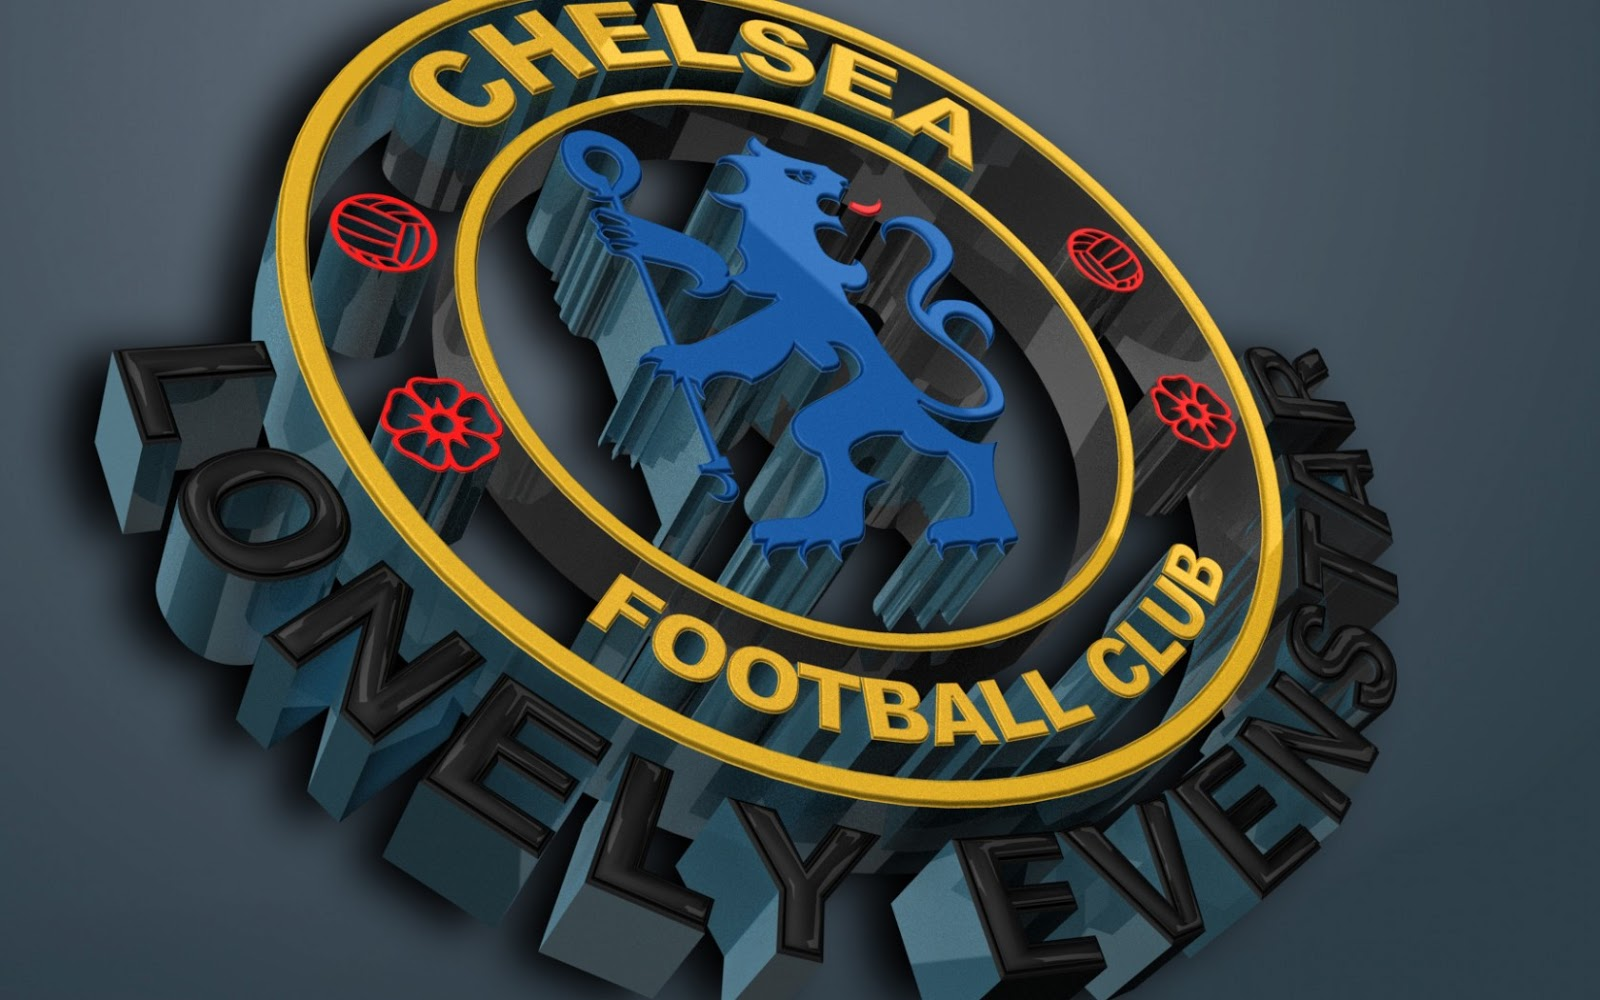 All Wallpapers Chelsea FC Logo Wallpapers 2013 1600x1000